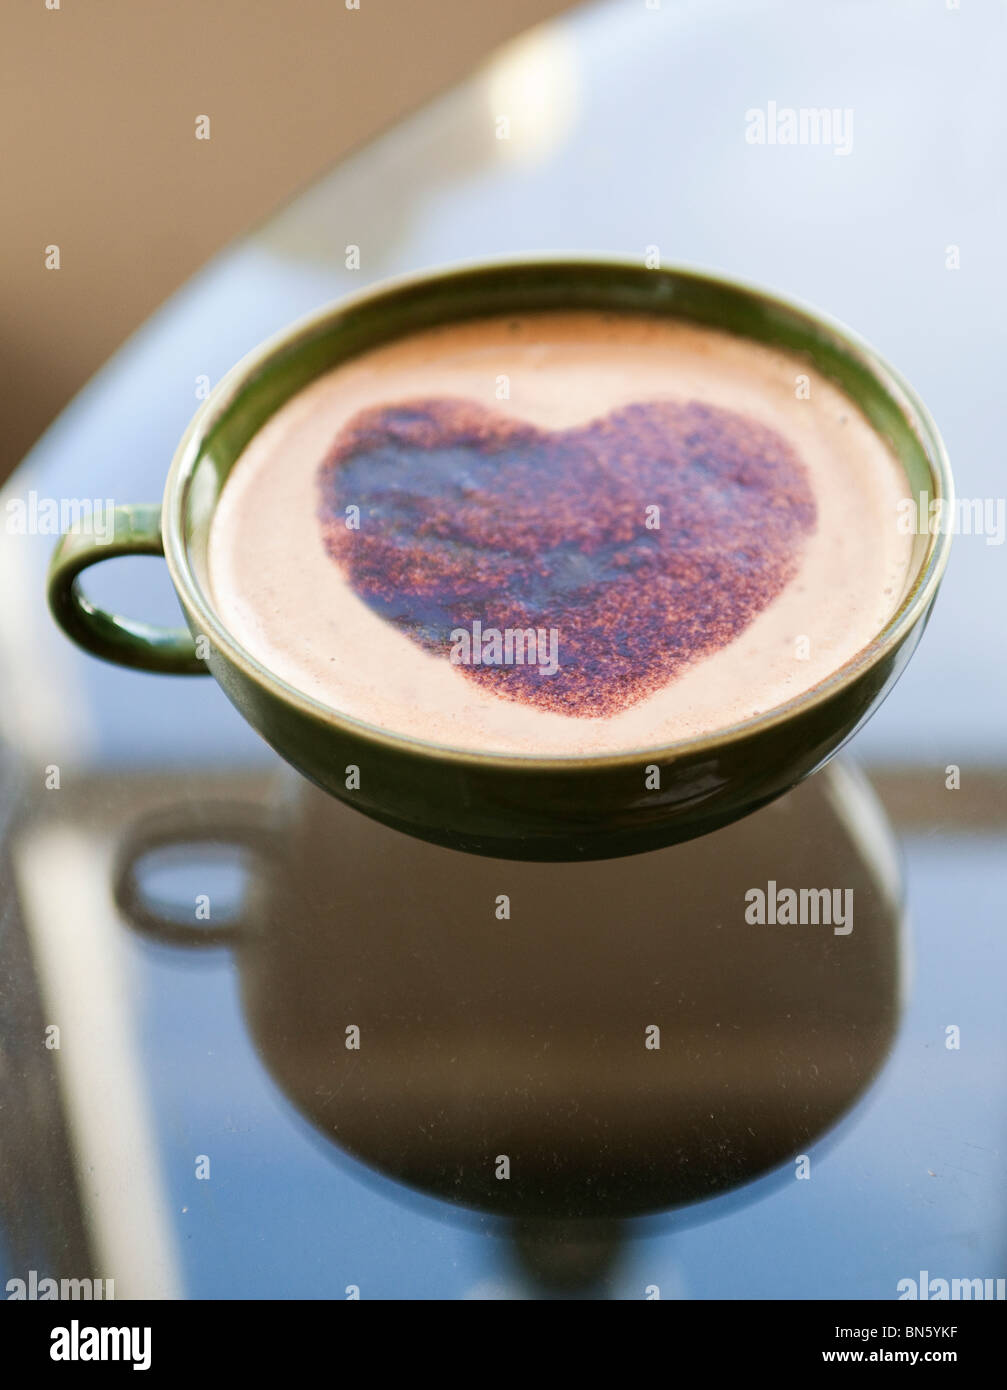 Heart on coffee cup - Stock Image